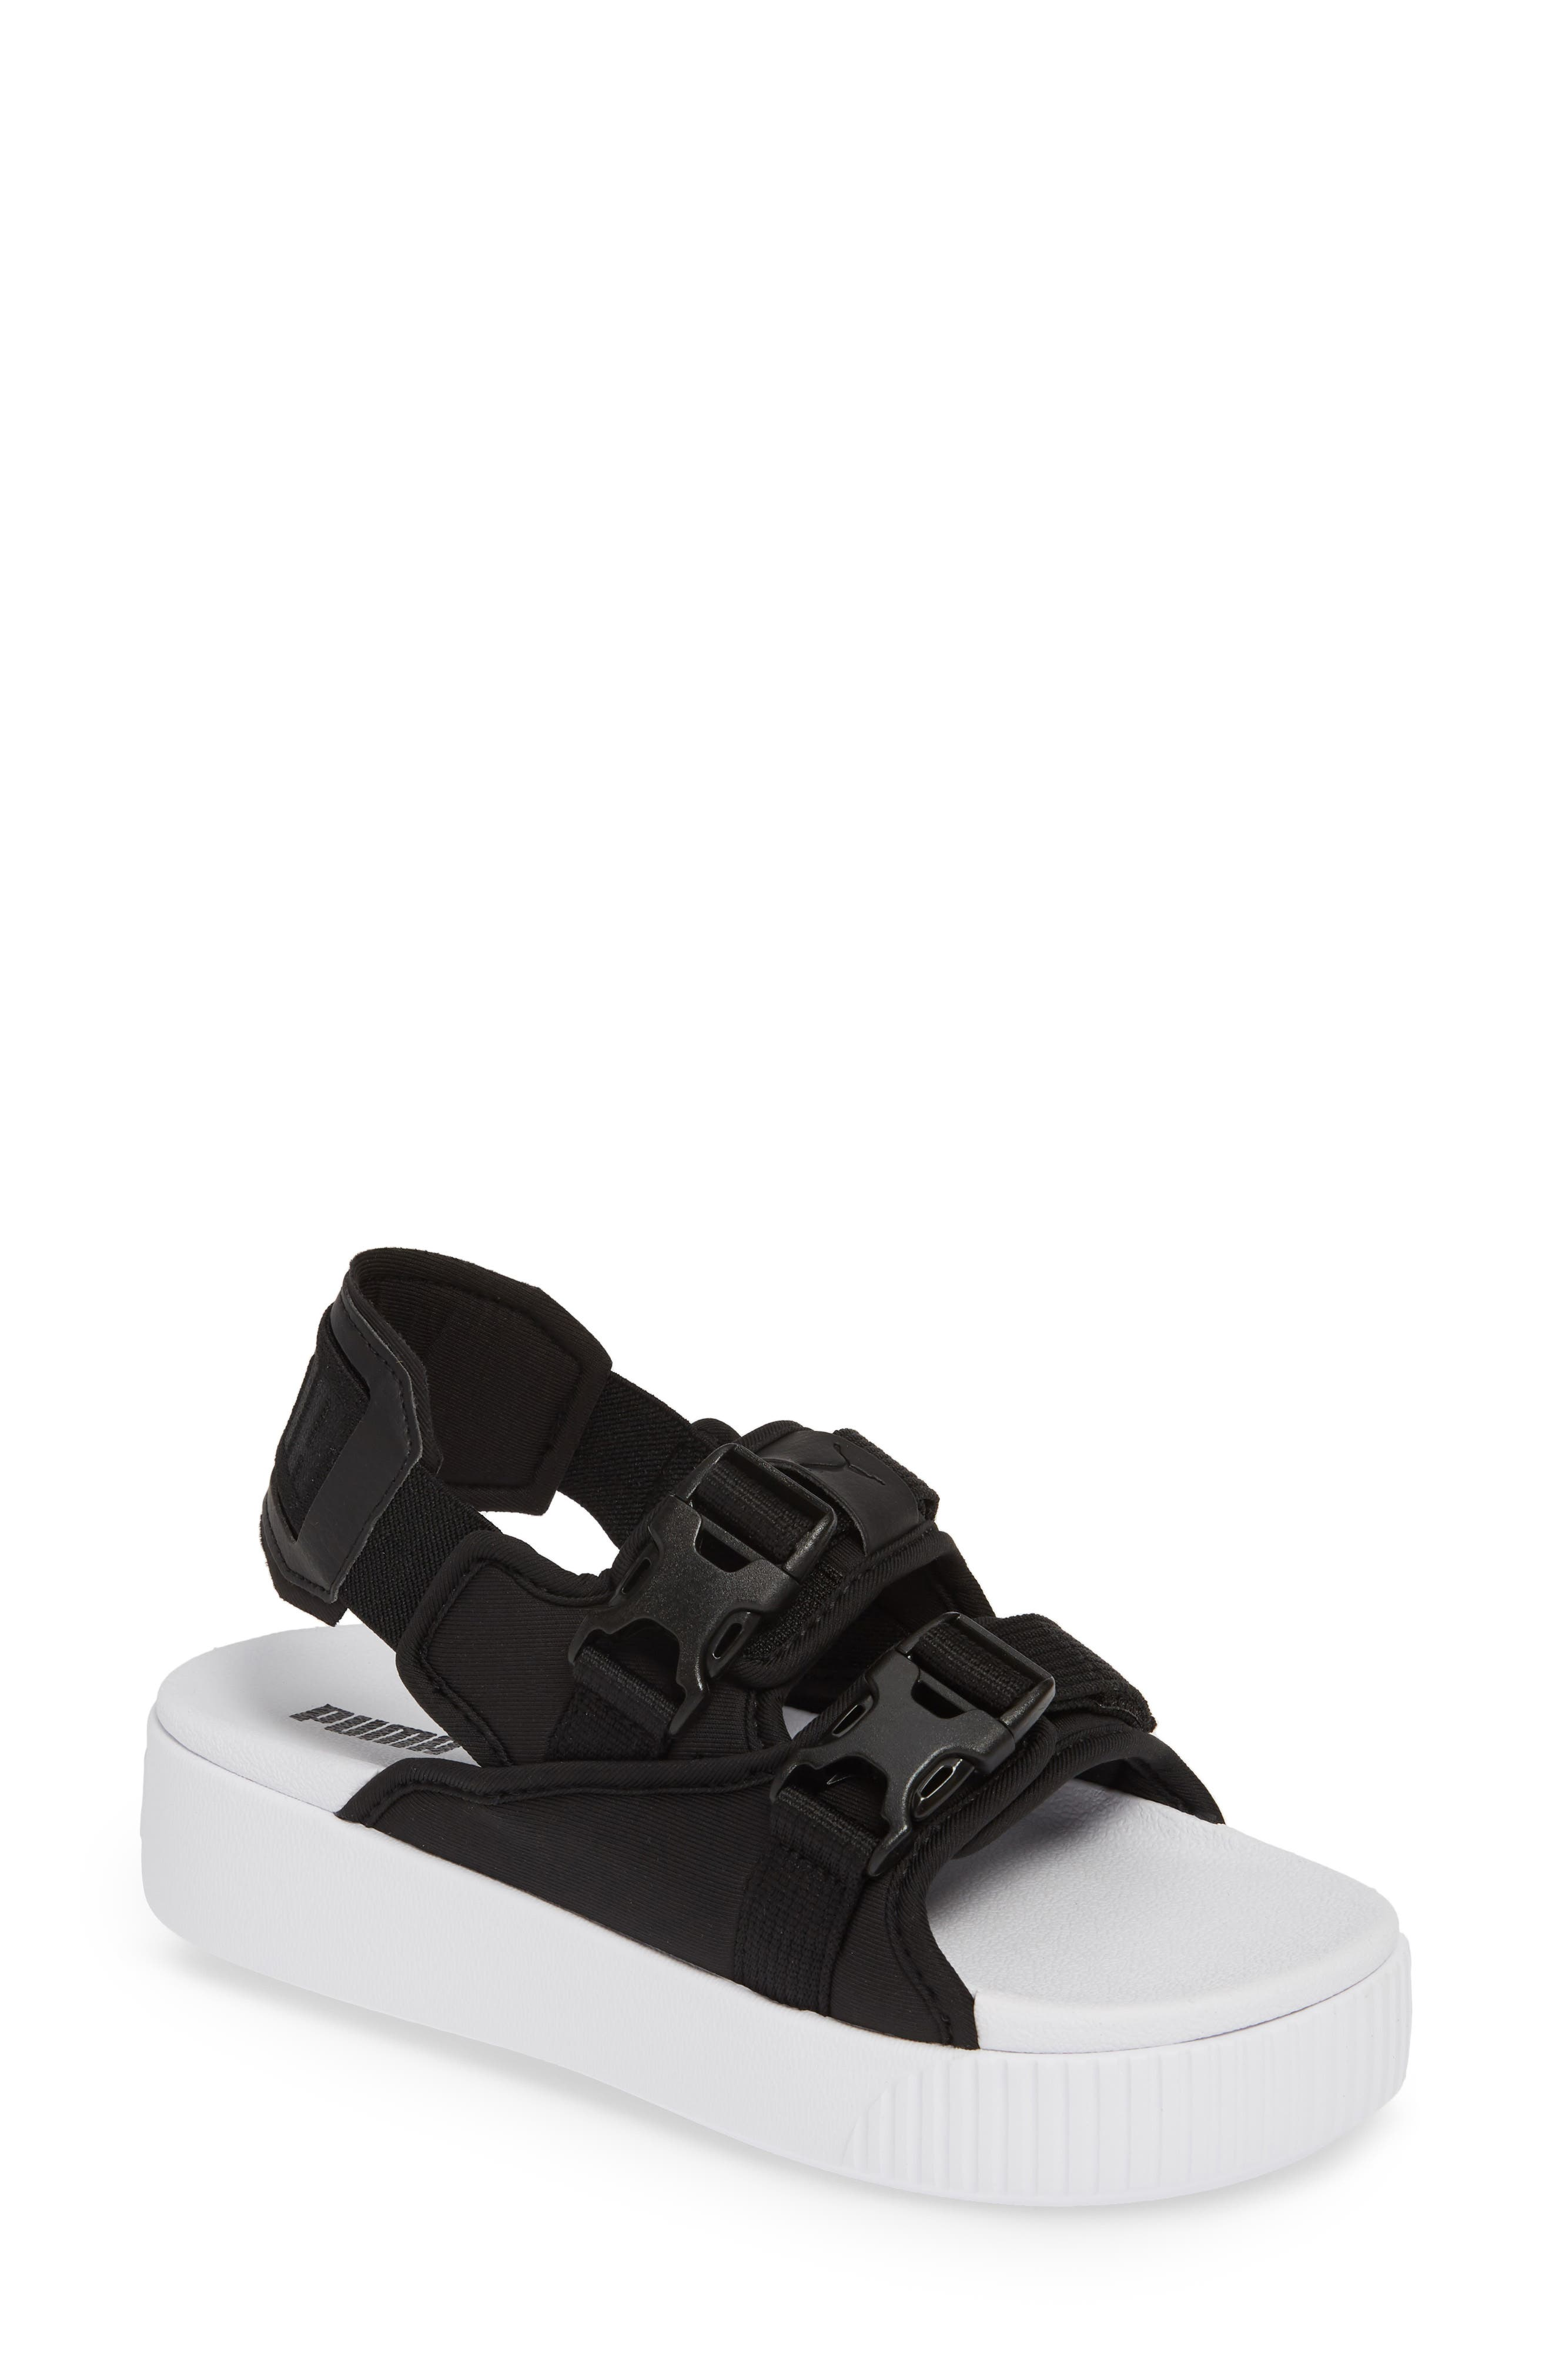 PUMA Platform Slide YLM 19 Sandal, Main, color, BLACK/ WHITE